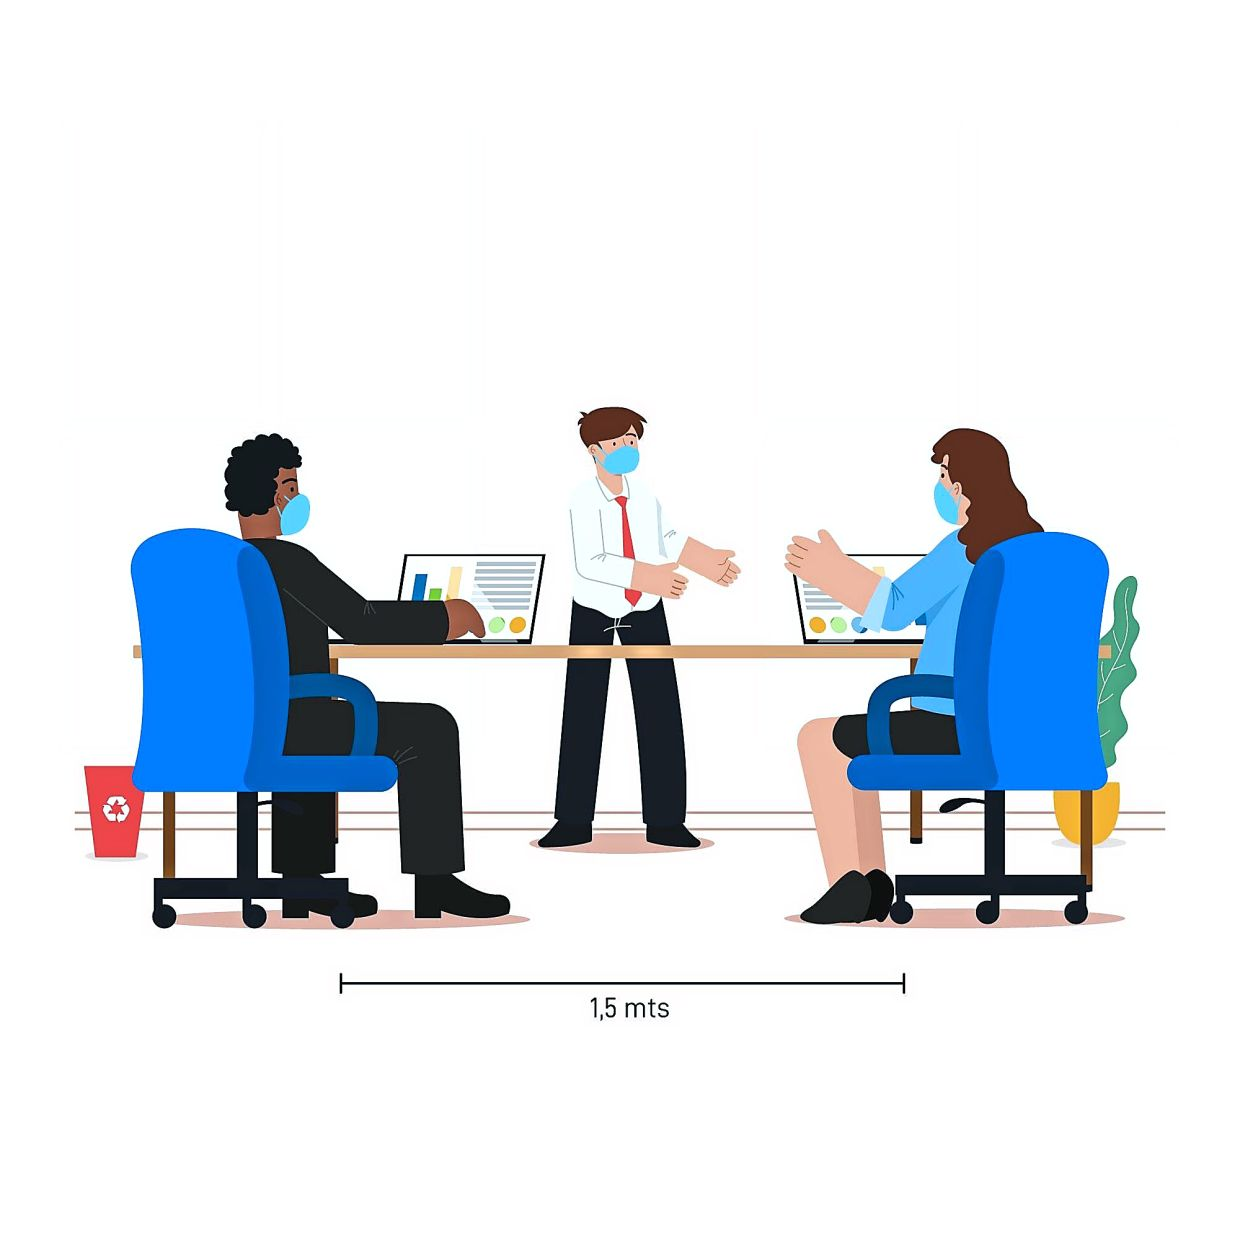 Observing social distancing in meeting rooms is a must, with web conferencing held as often as possible. Photo: Freepik